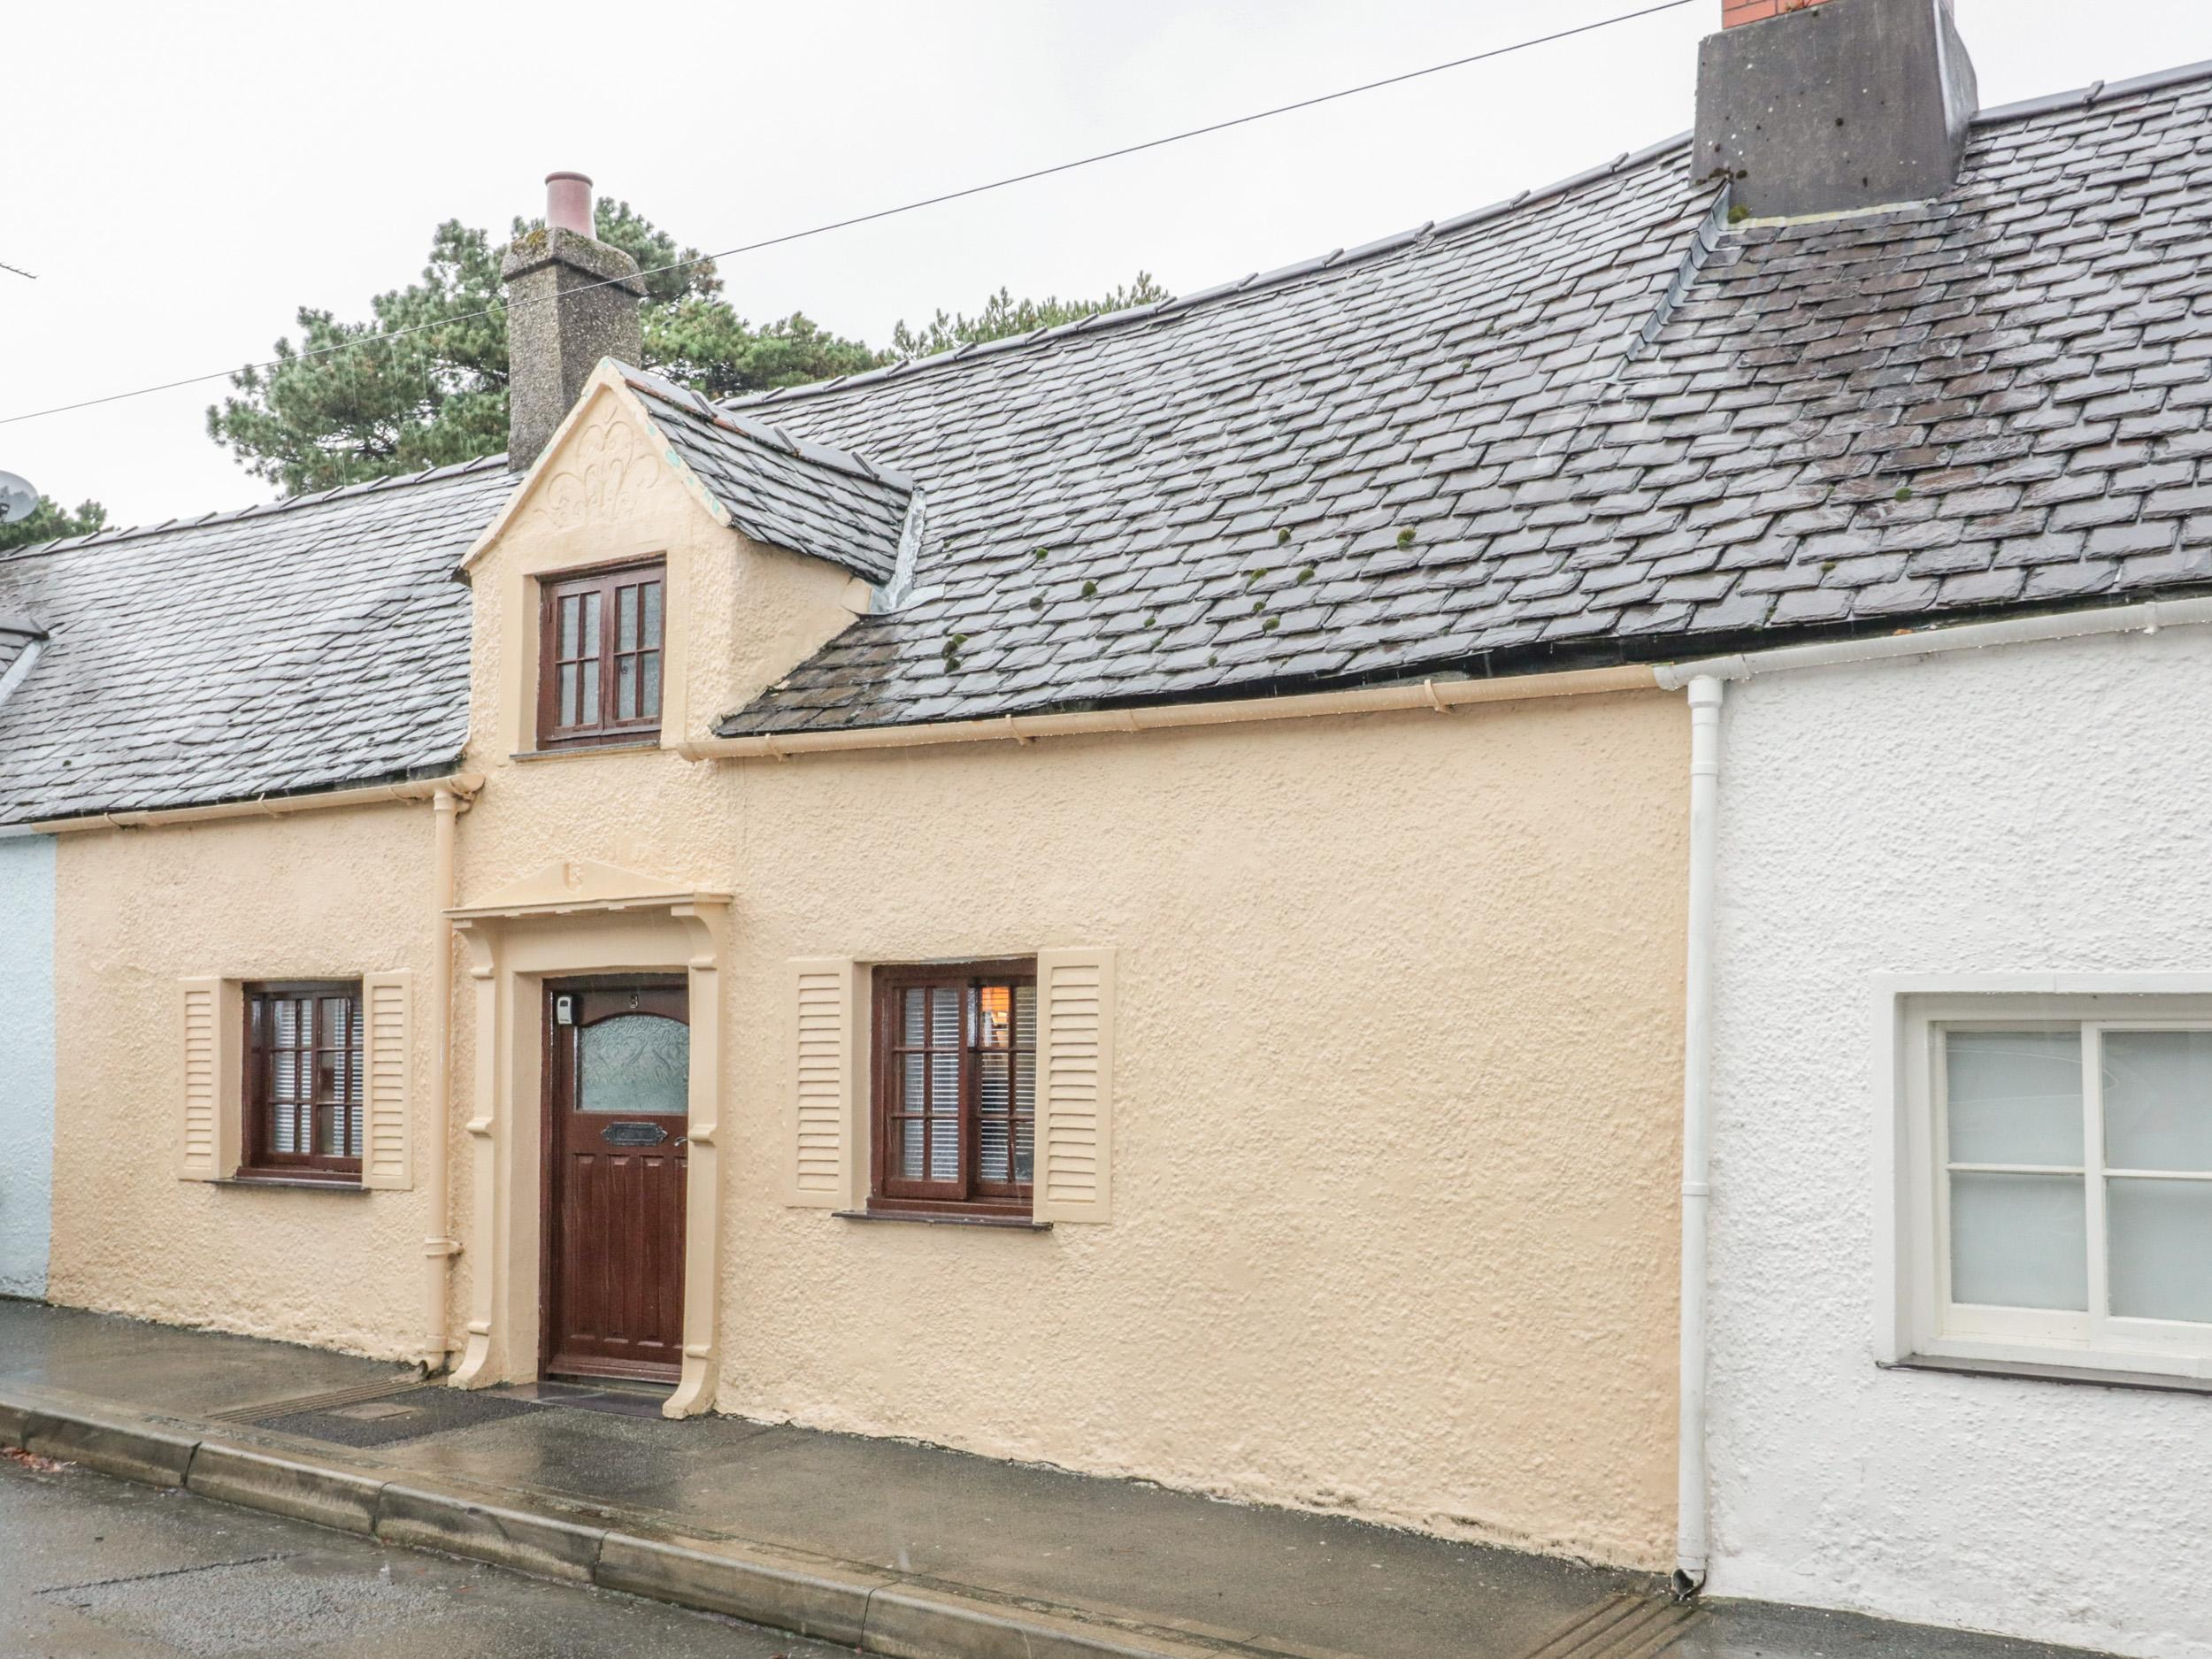 Holiday Cottage Reviews for 8 Wexham Street - Holiday Cottage in Beaumaris, Isle Of Anglesey